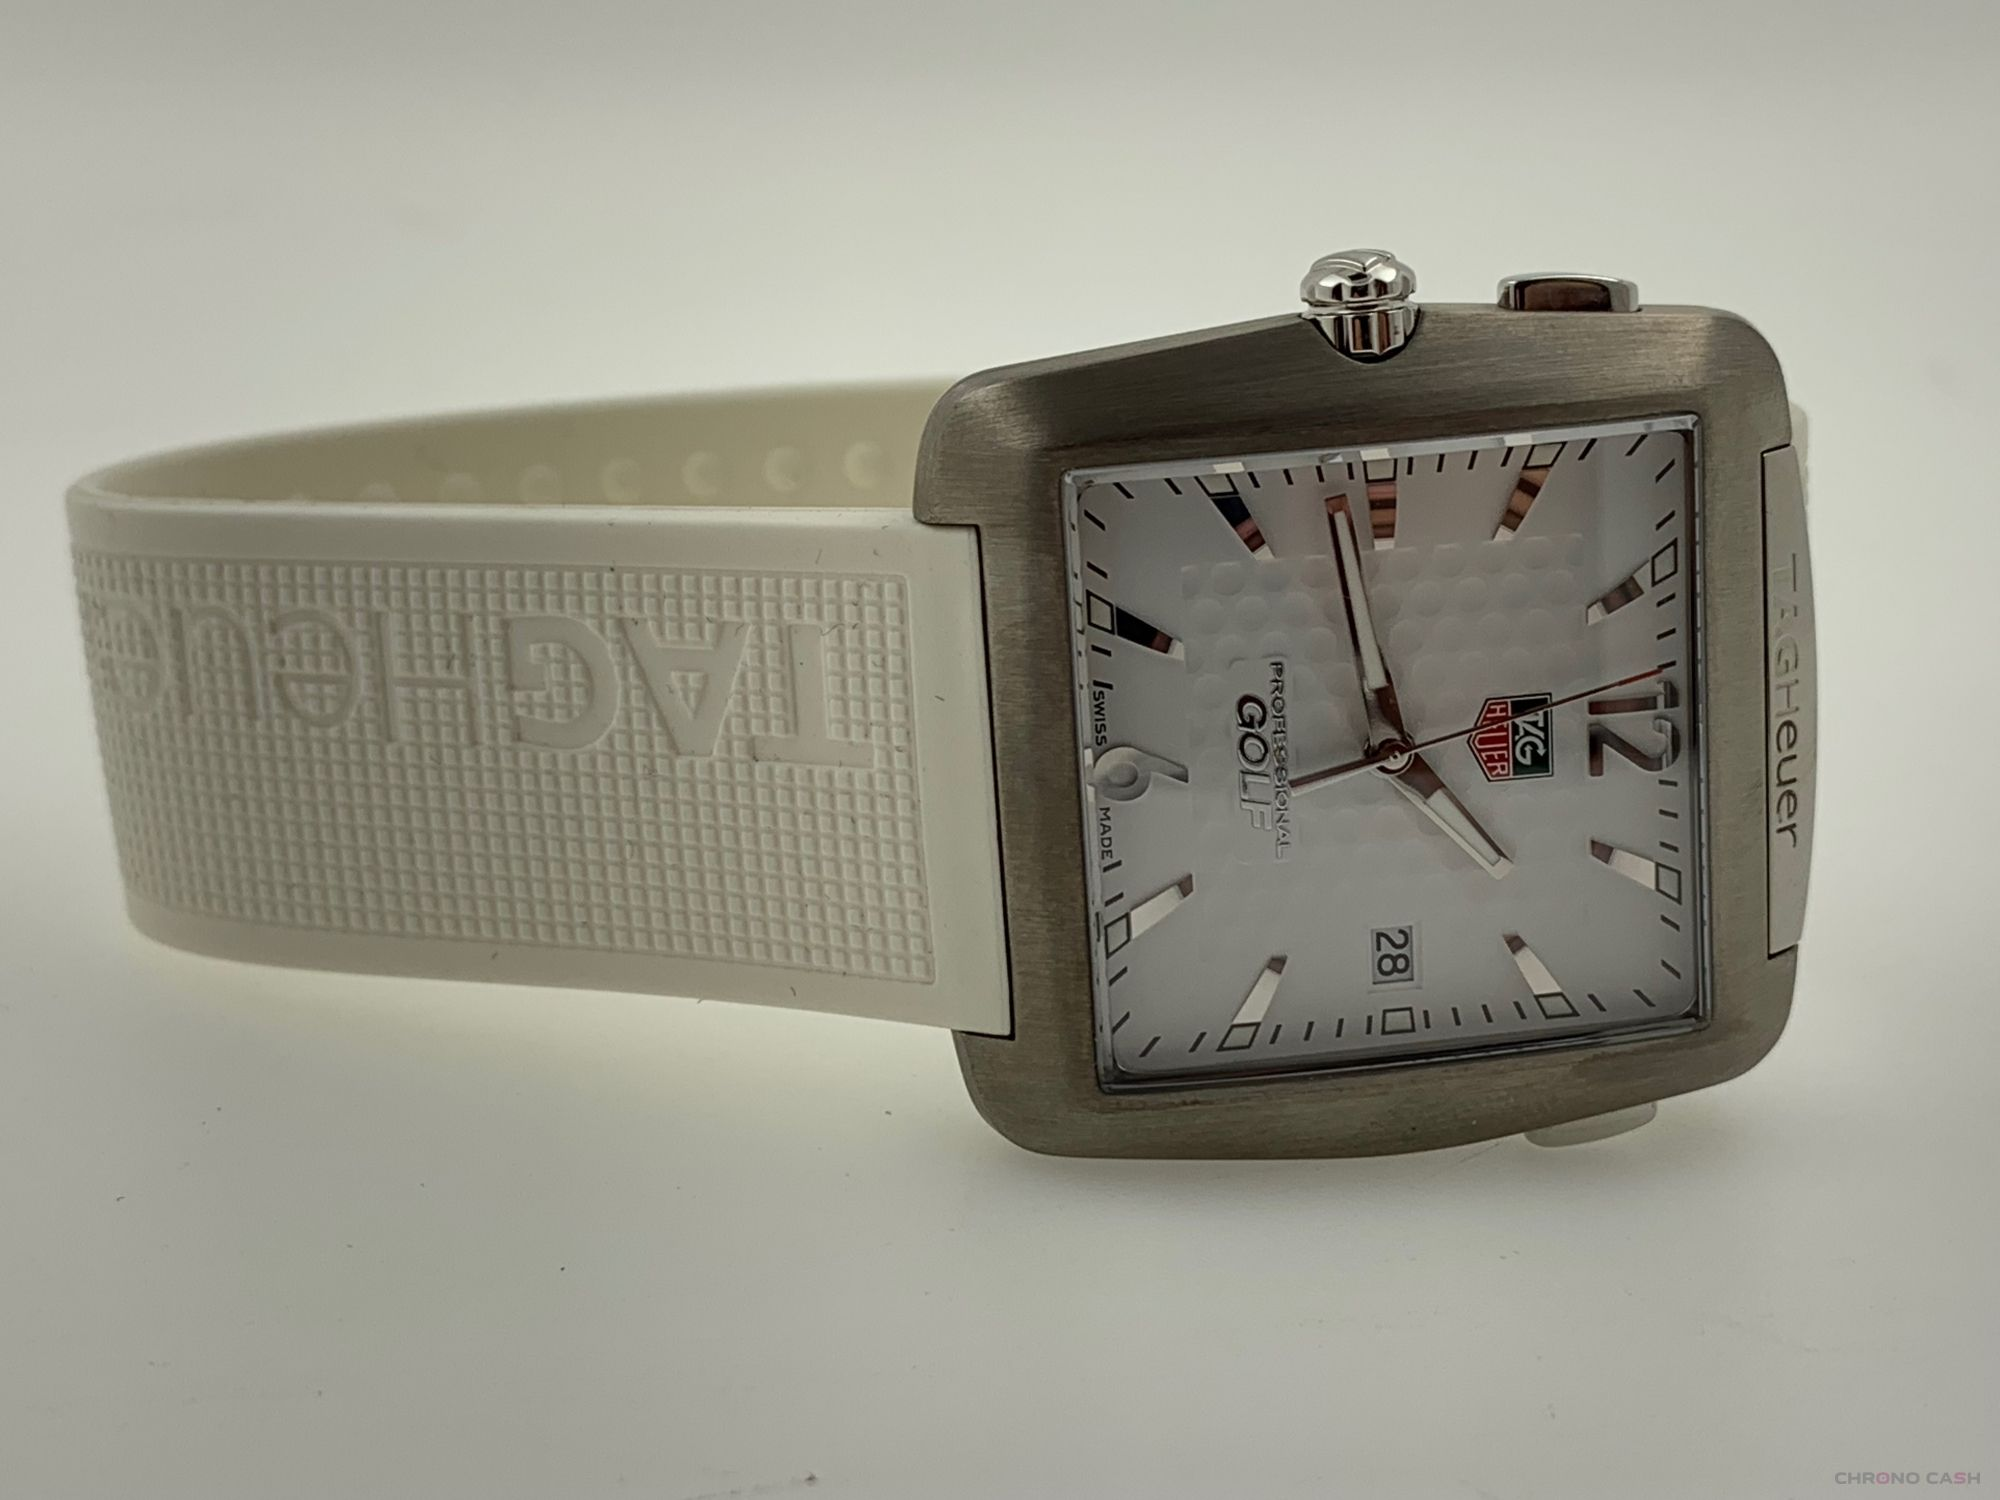 Tag Heuer Tag Heuer Tiger Woods Professional Golf Watch